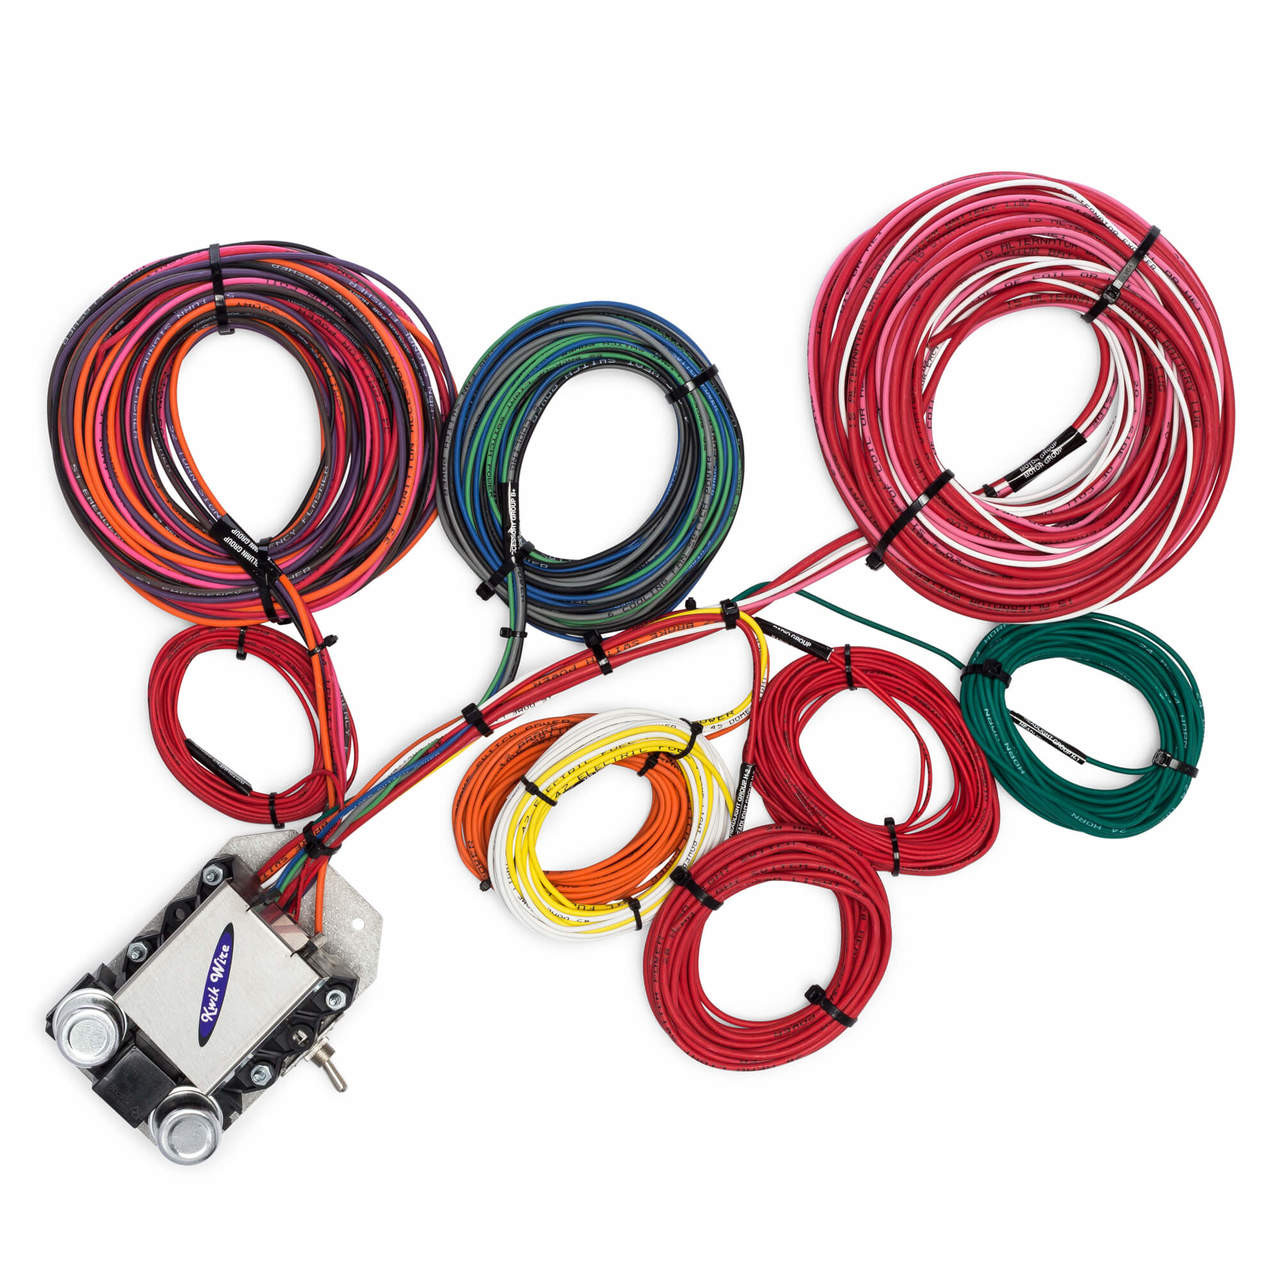 14 Circuit Wiring Harness Modern Design Of Diagram 12 Universal Trunk Mount Wire Kwikwire Com Electrify Your Ride Rh